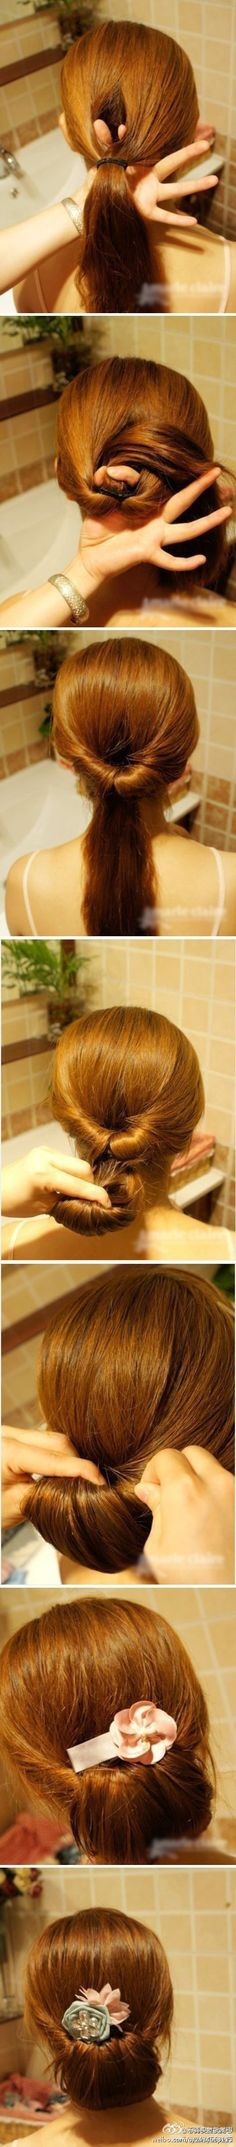 love le double bun!